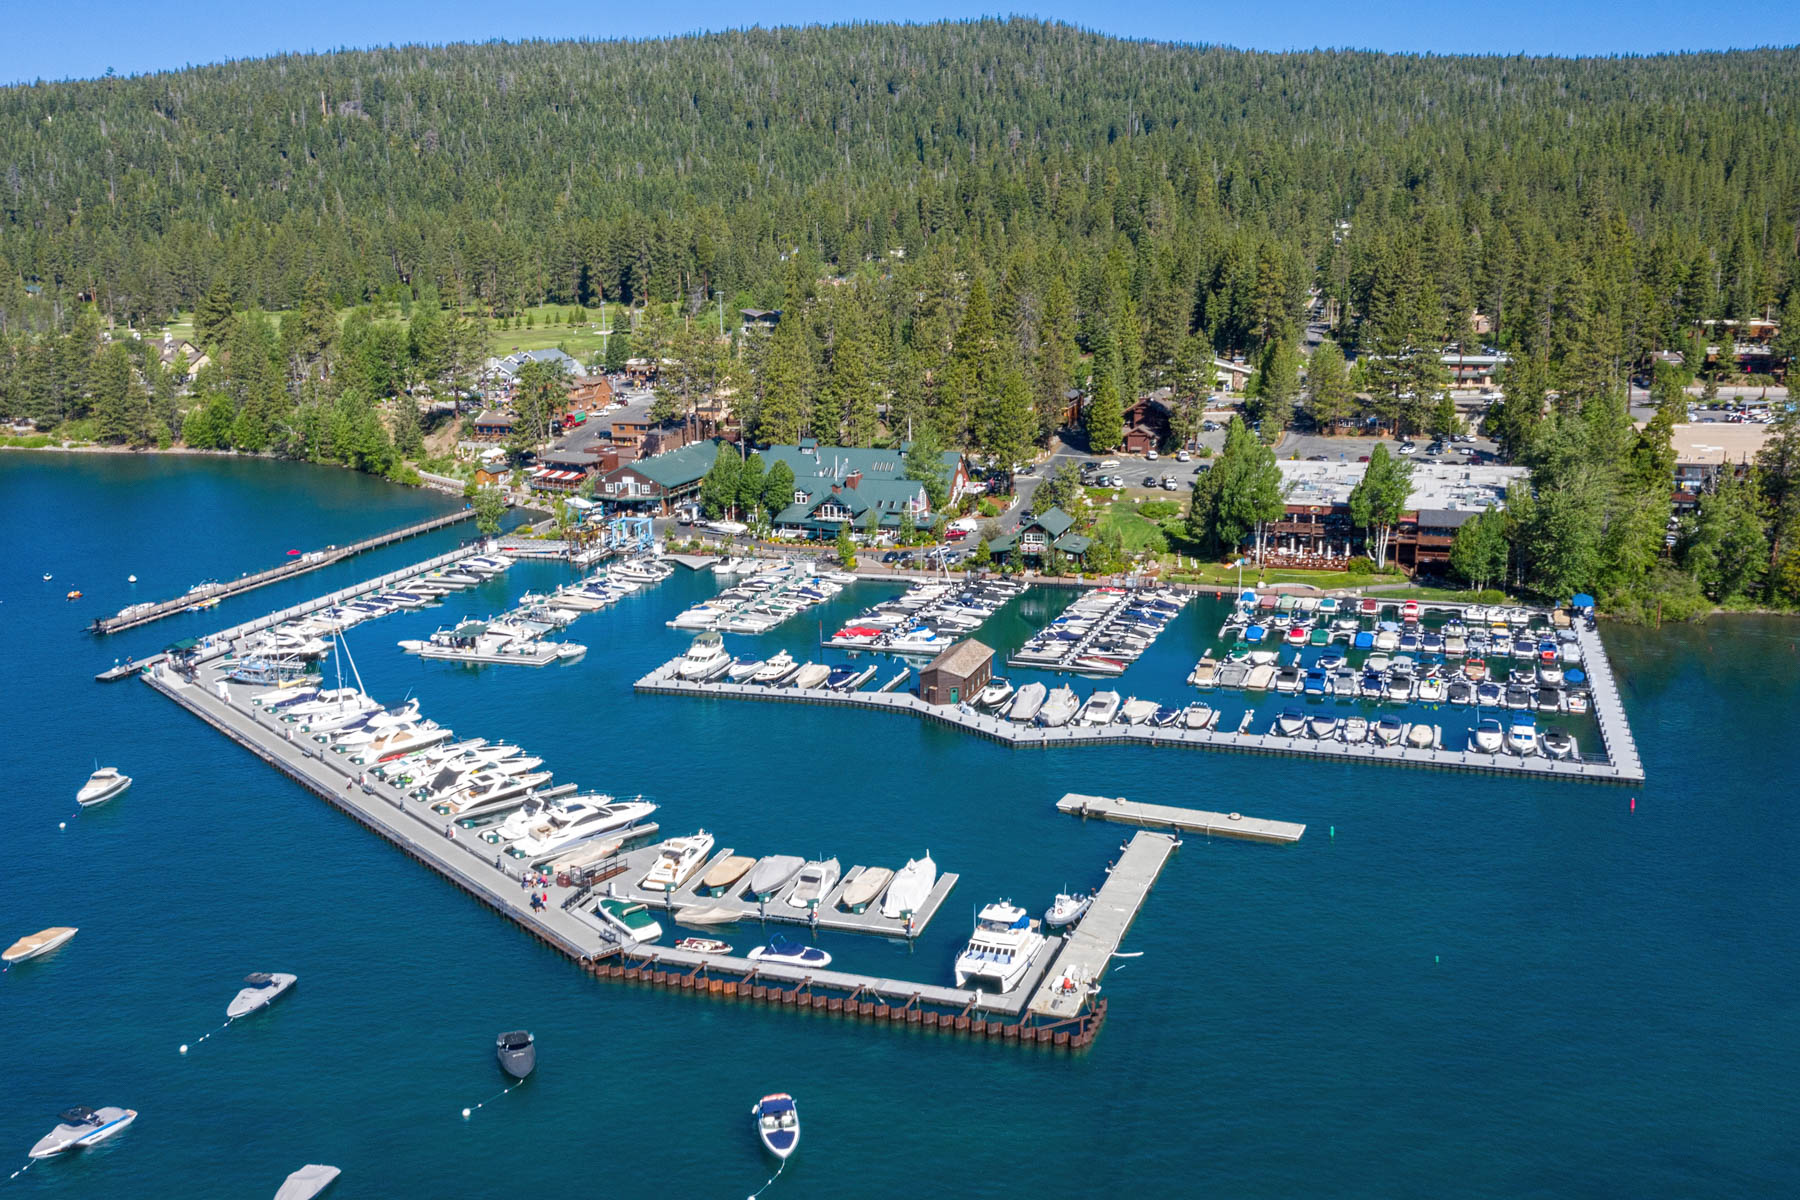 for Sale at 700 N Lake Blvd #D-14, Tahoe City, CA 96145 700 N Lake Blvd #D-14 Tahoe City, California 96150 United States